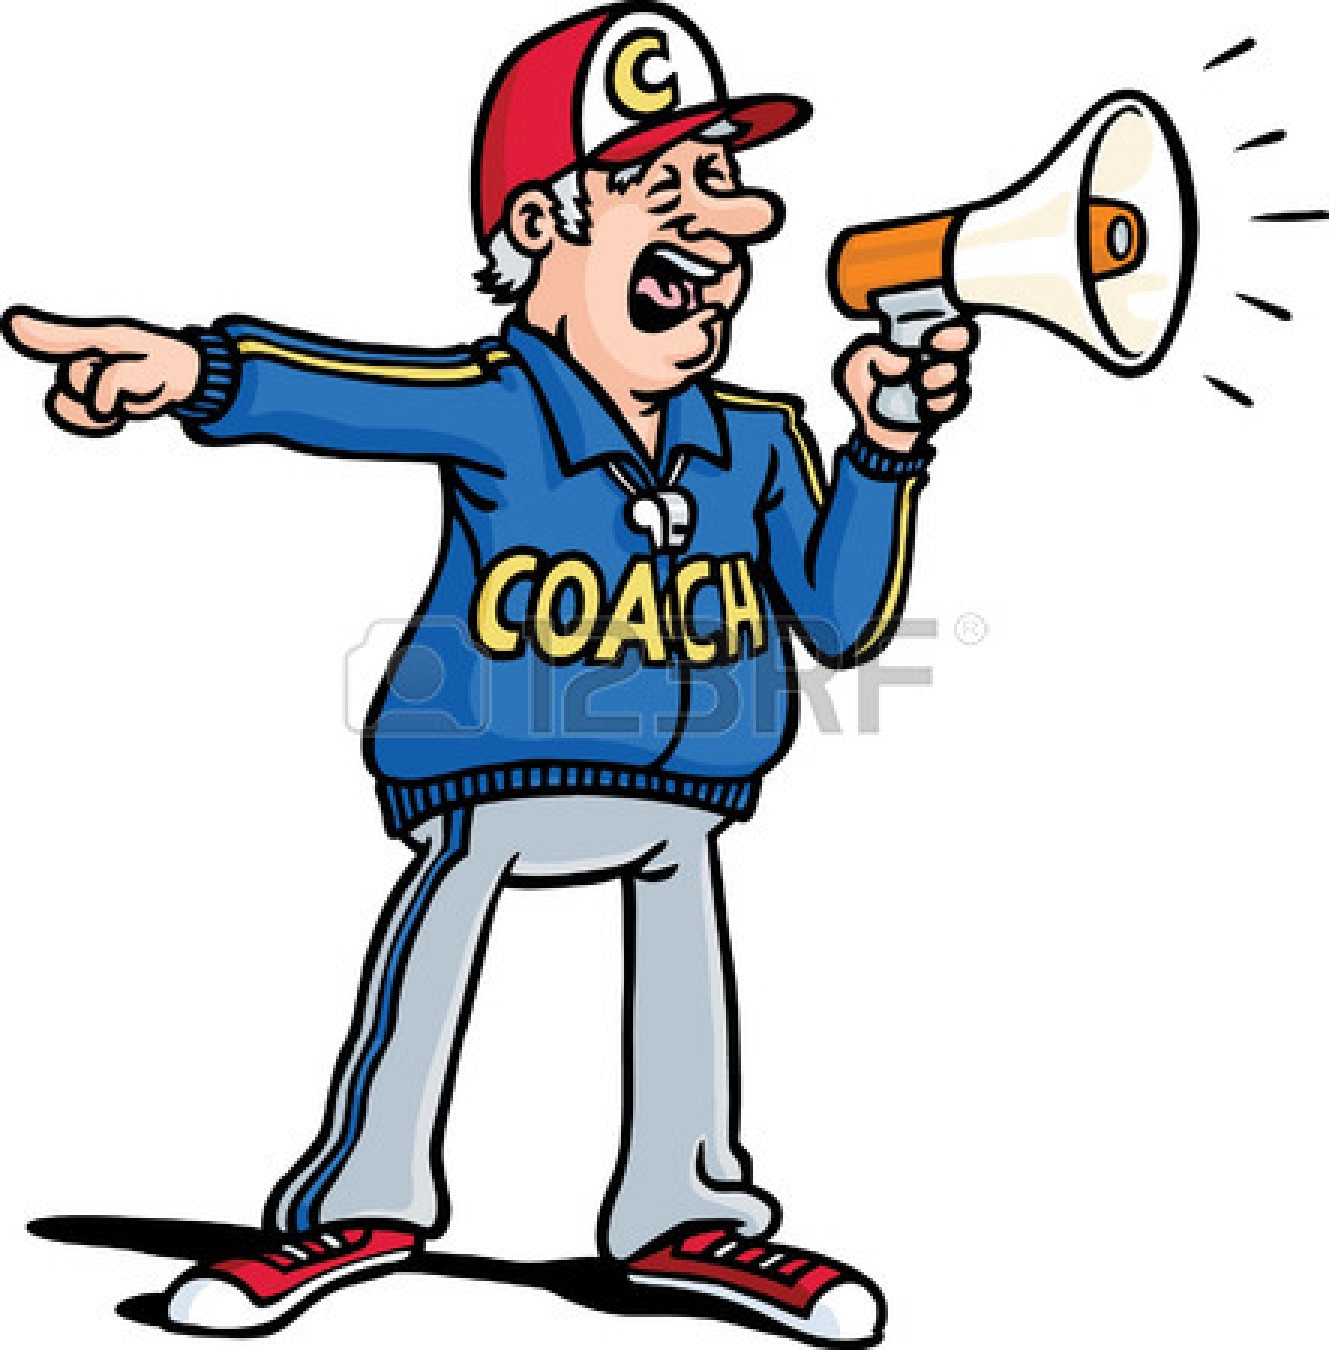 Softball coach clipart clipart royalty free Coach Cliparts | Free download best Coach Cliparts on ... clipart royalty free